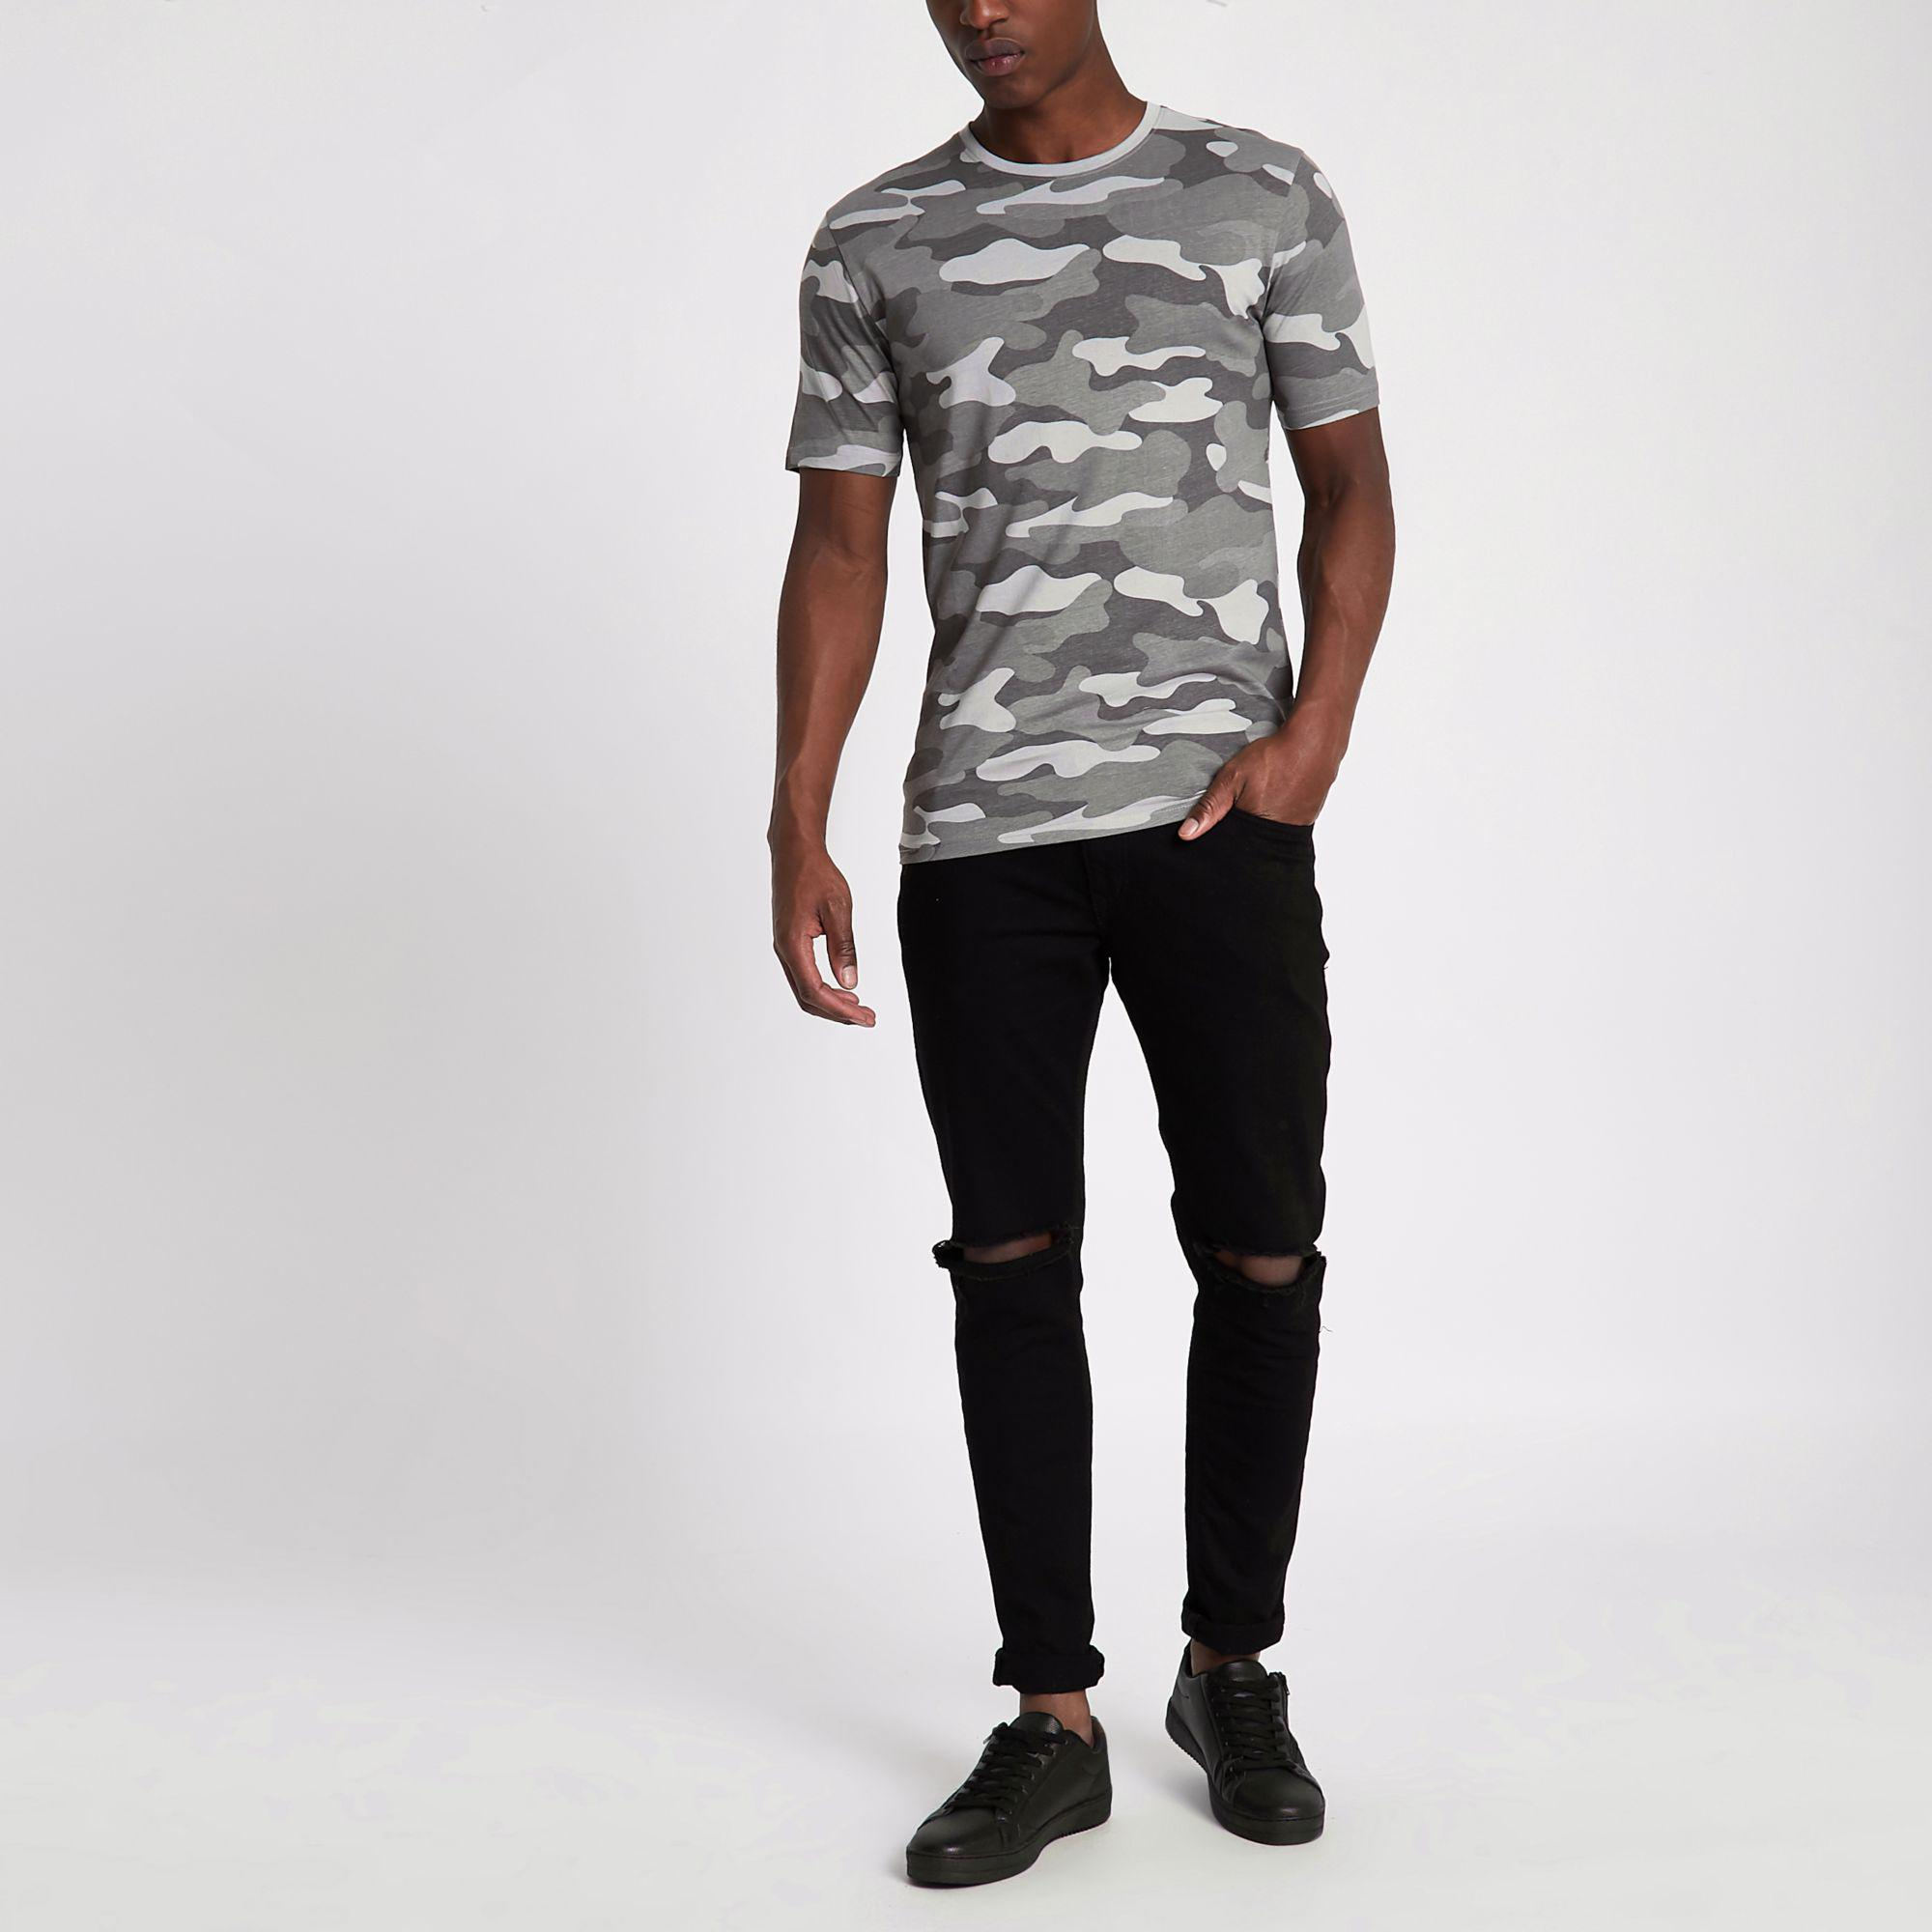 6530fc5e4c0 river-island-Grey-Only-And-Sons-Grey-Camo-Print-T-shirt.jpeg